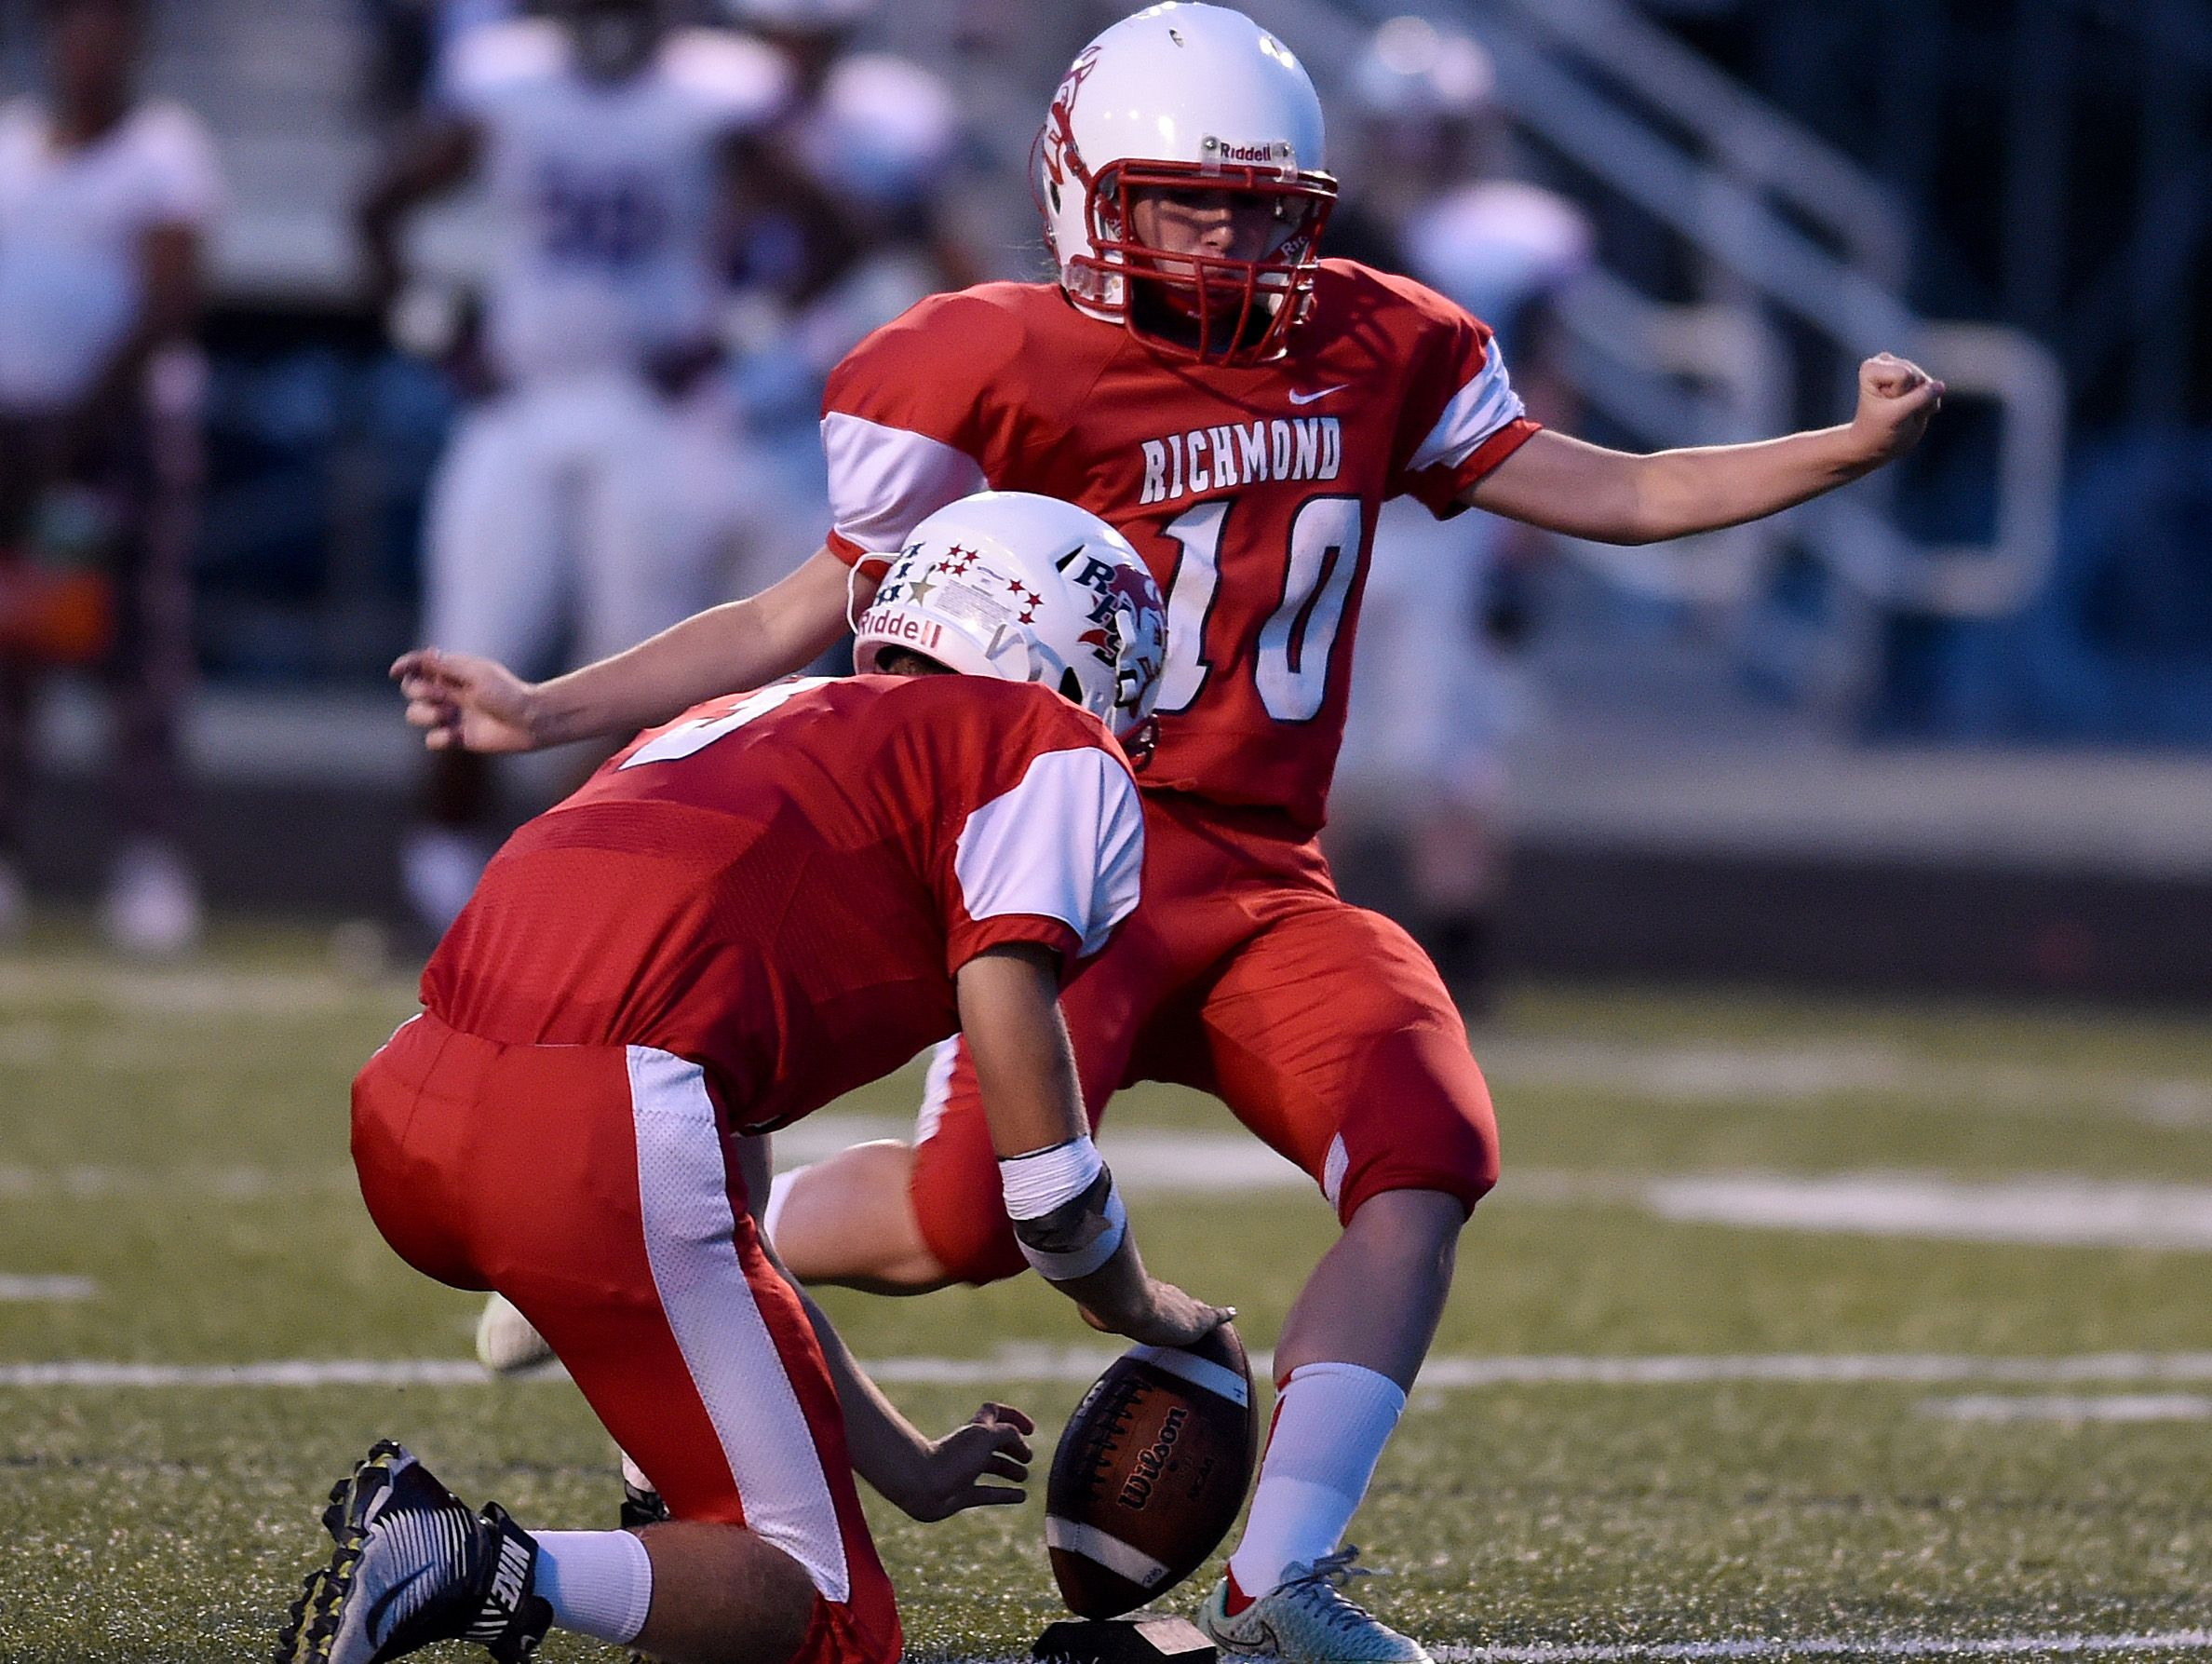 Richmond's Alec Snedigar holds the ball as Alexis Shiplett kicks against Muncie Central Friday, Sept. 9, 2016, during a football game on Lyboult Field.